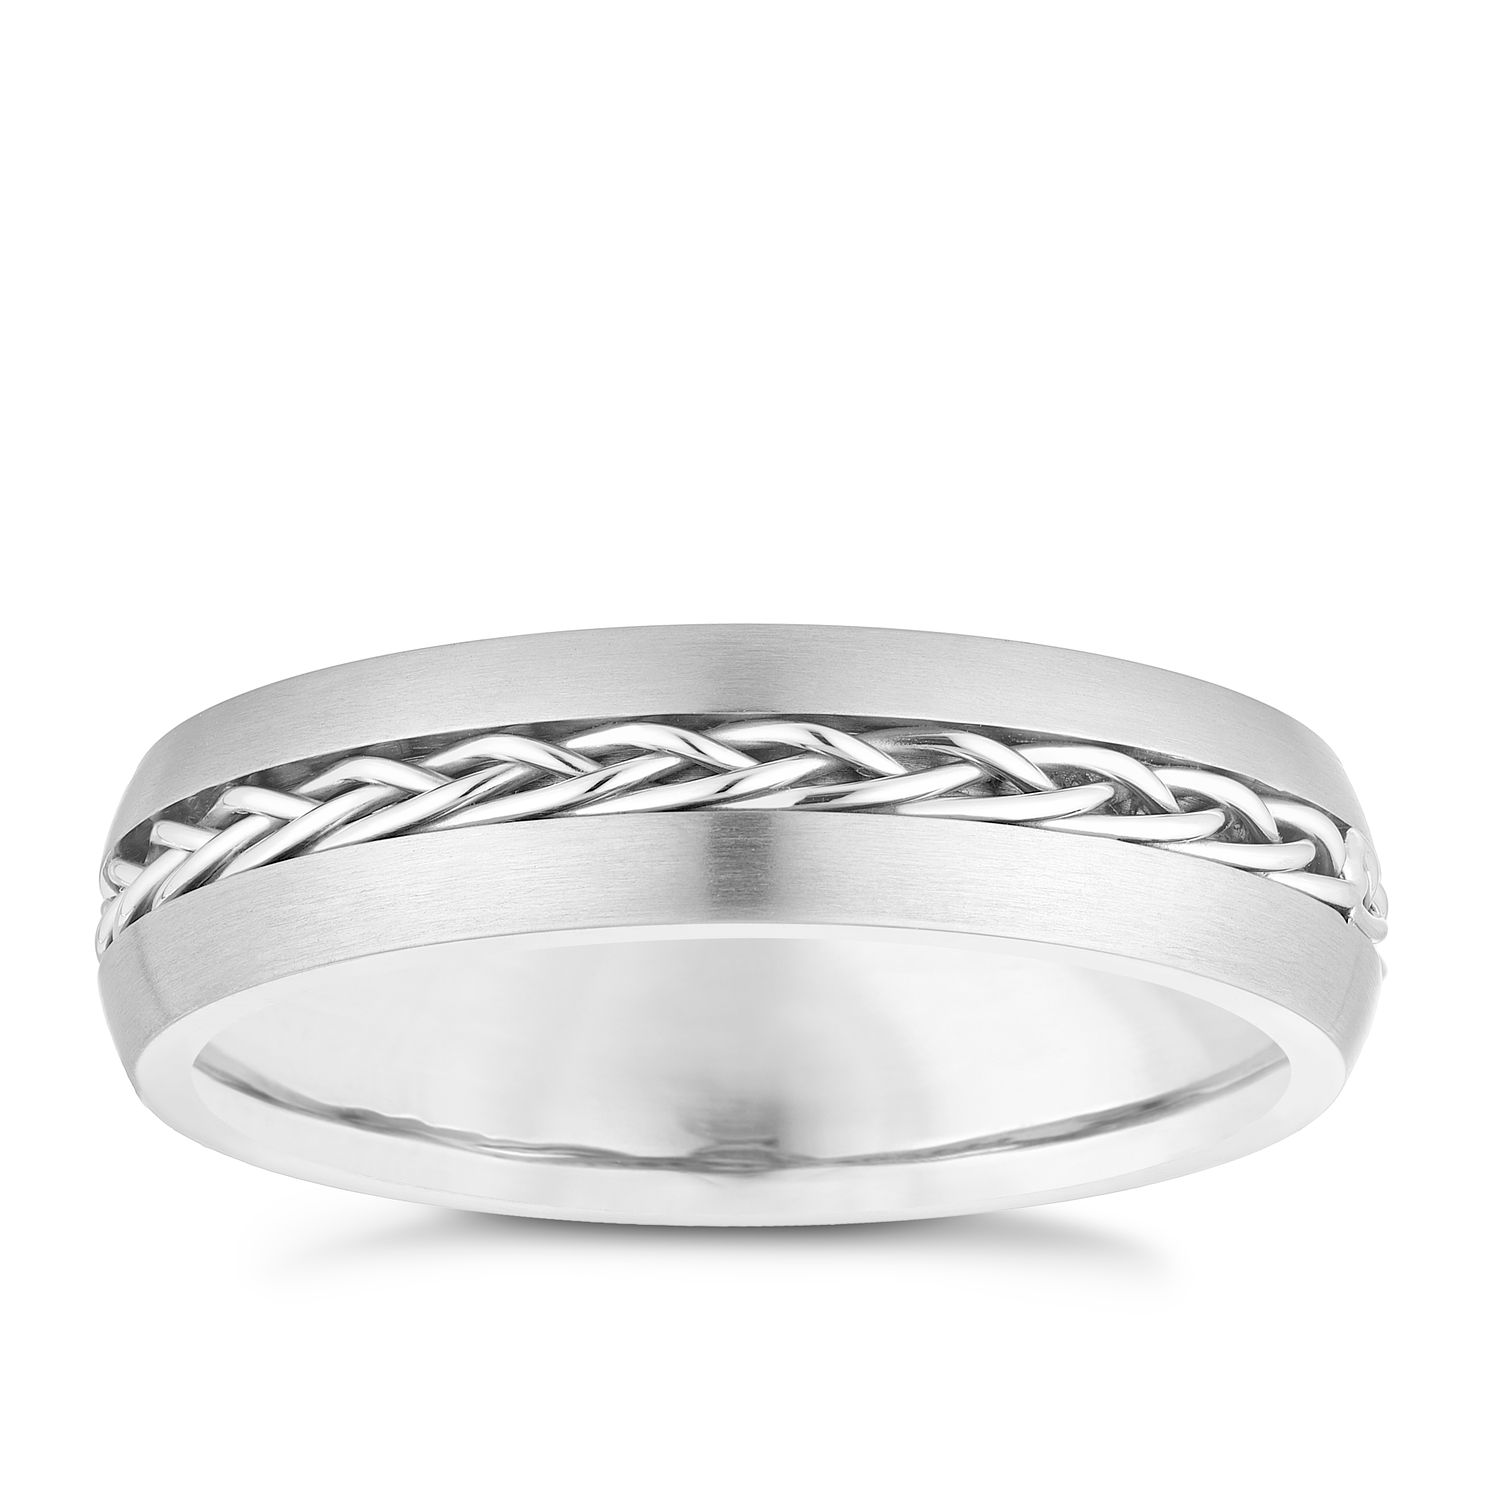 Titanium Plaited Centre Design Ring - Product number 3929981